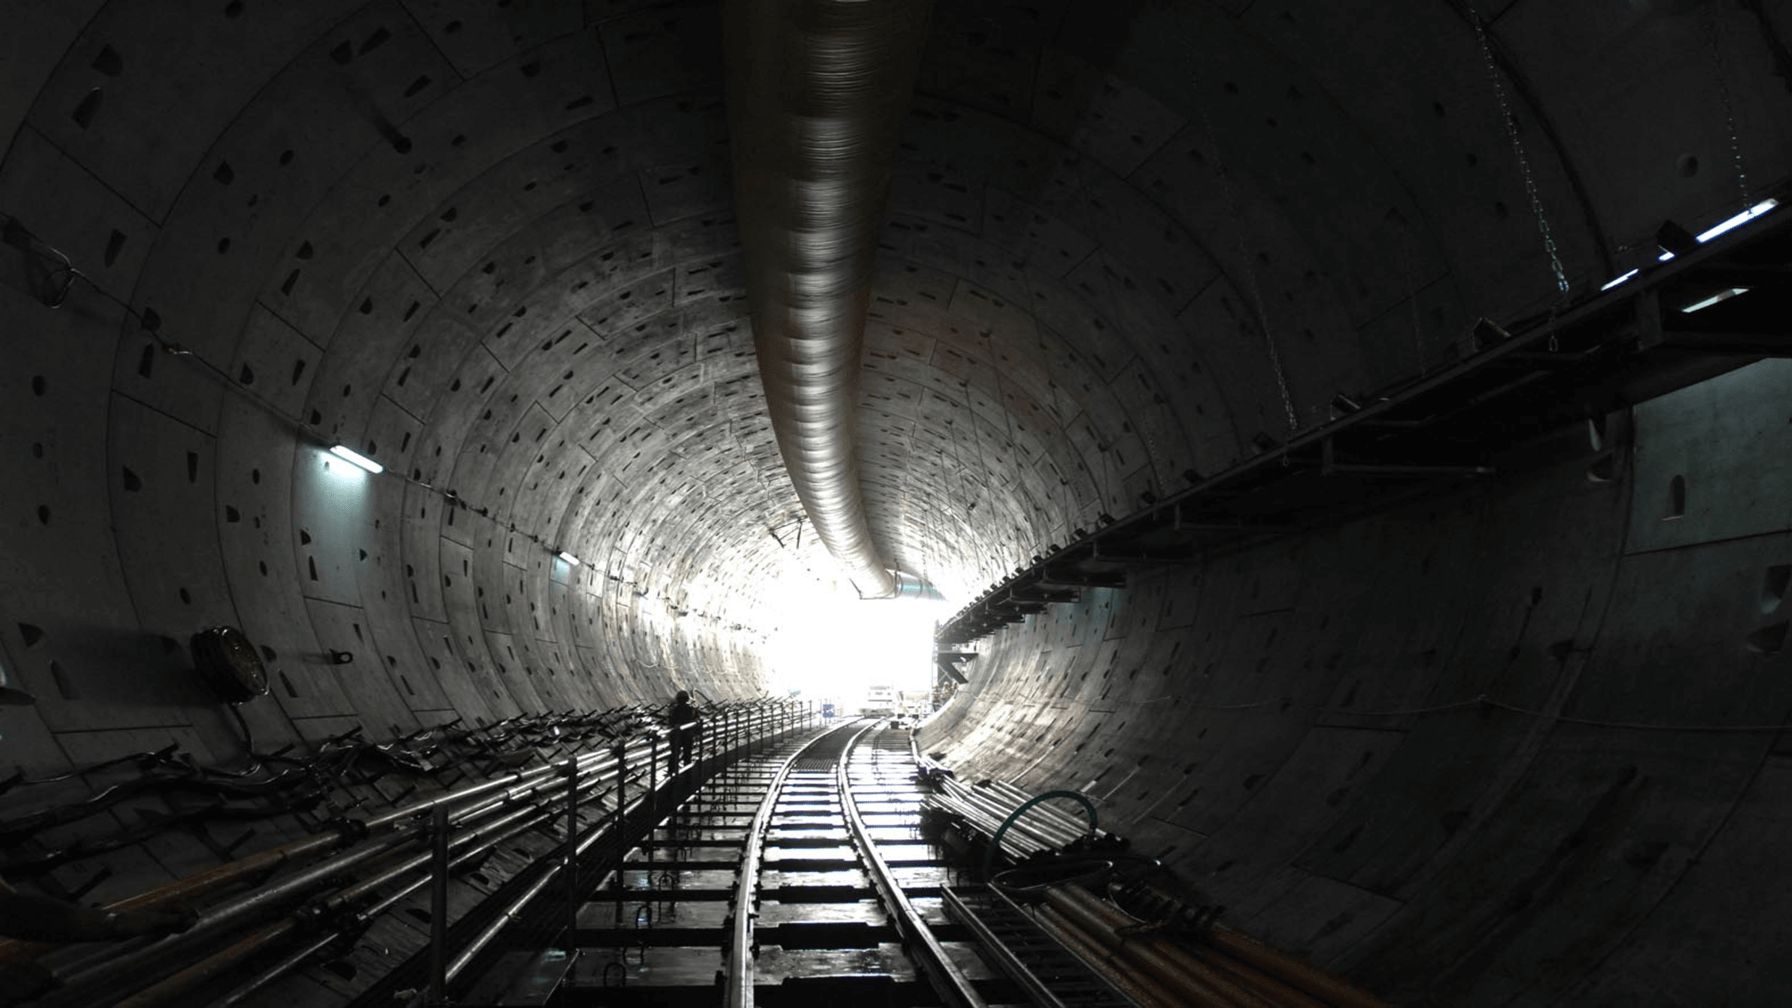 Precise cooling keeps Metro construction on track